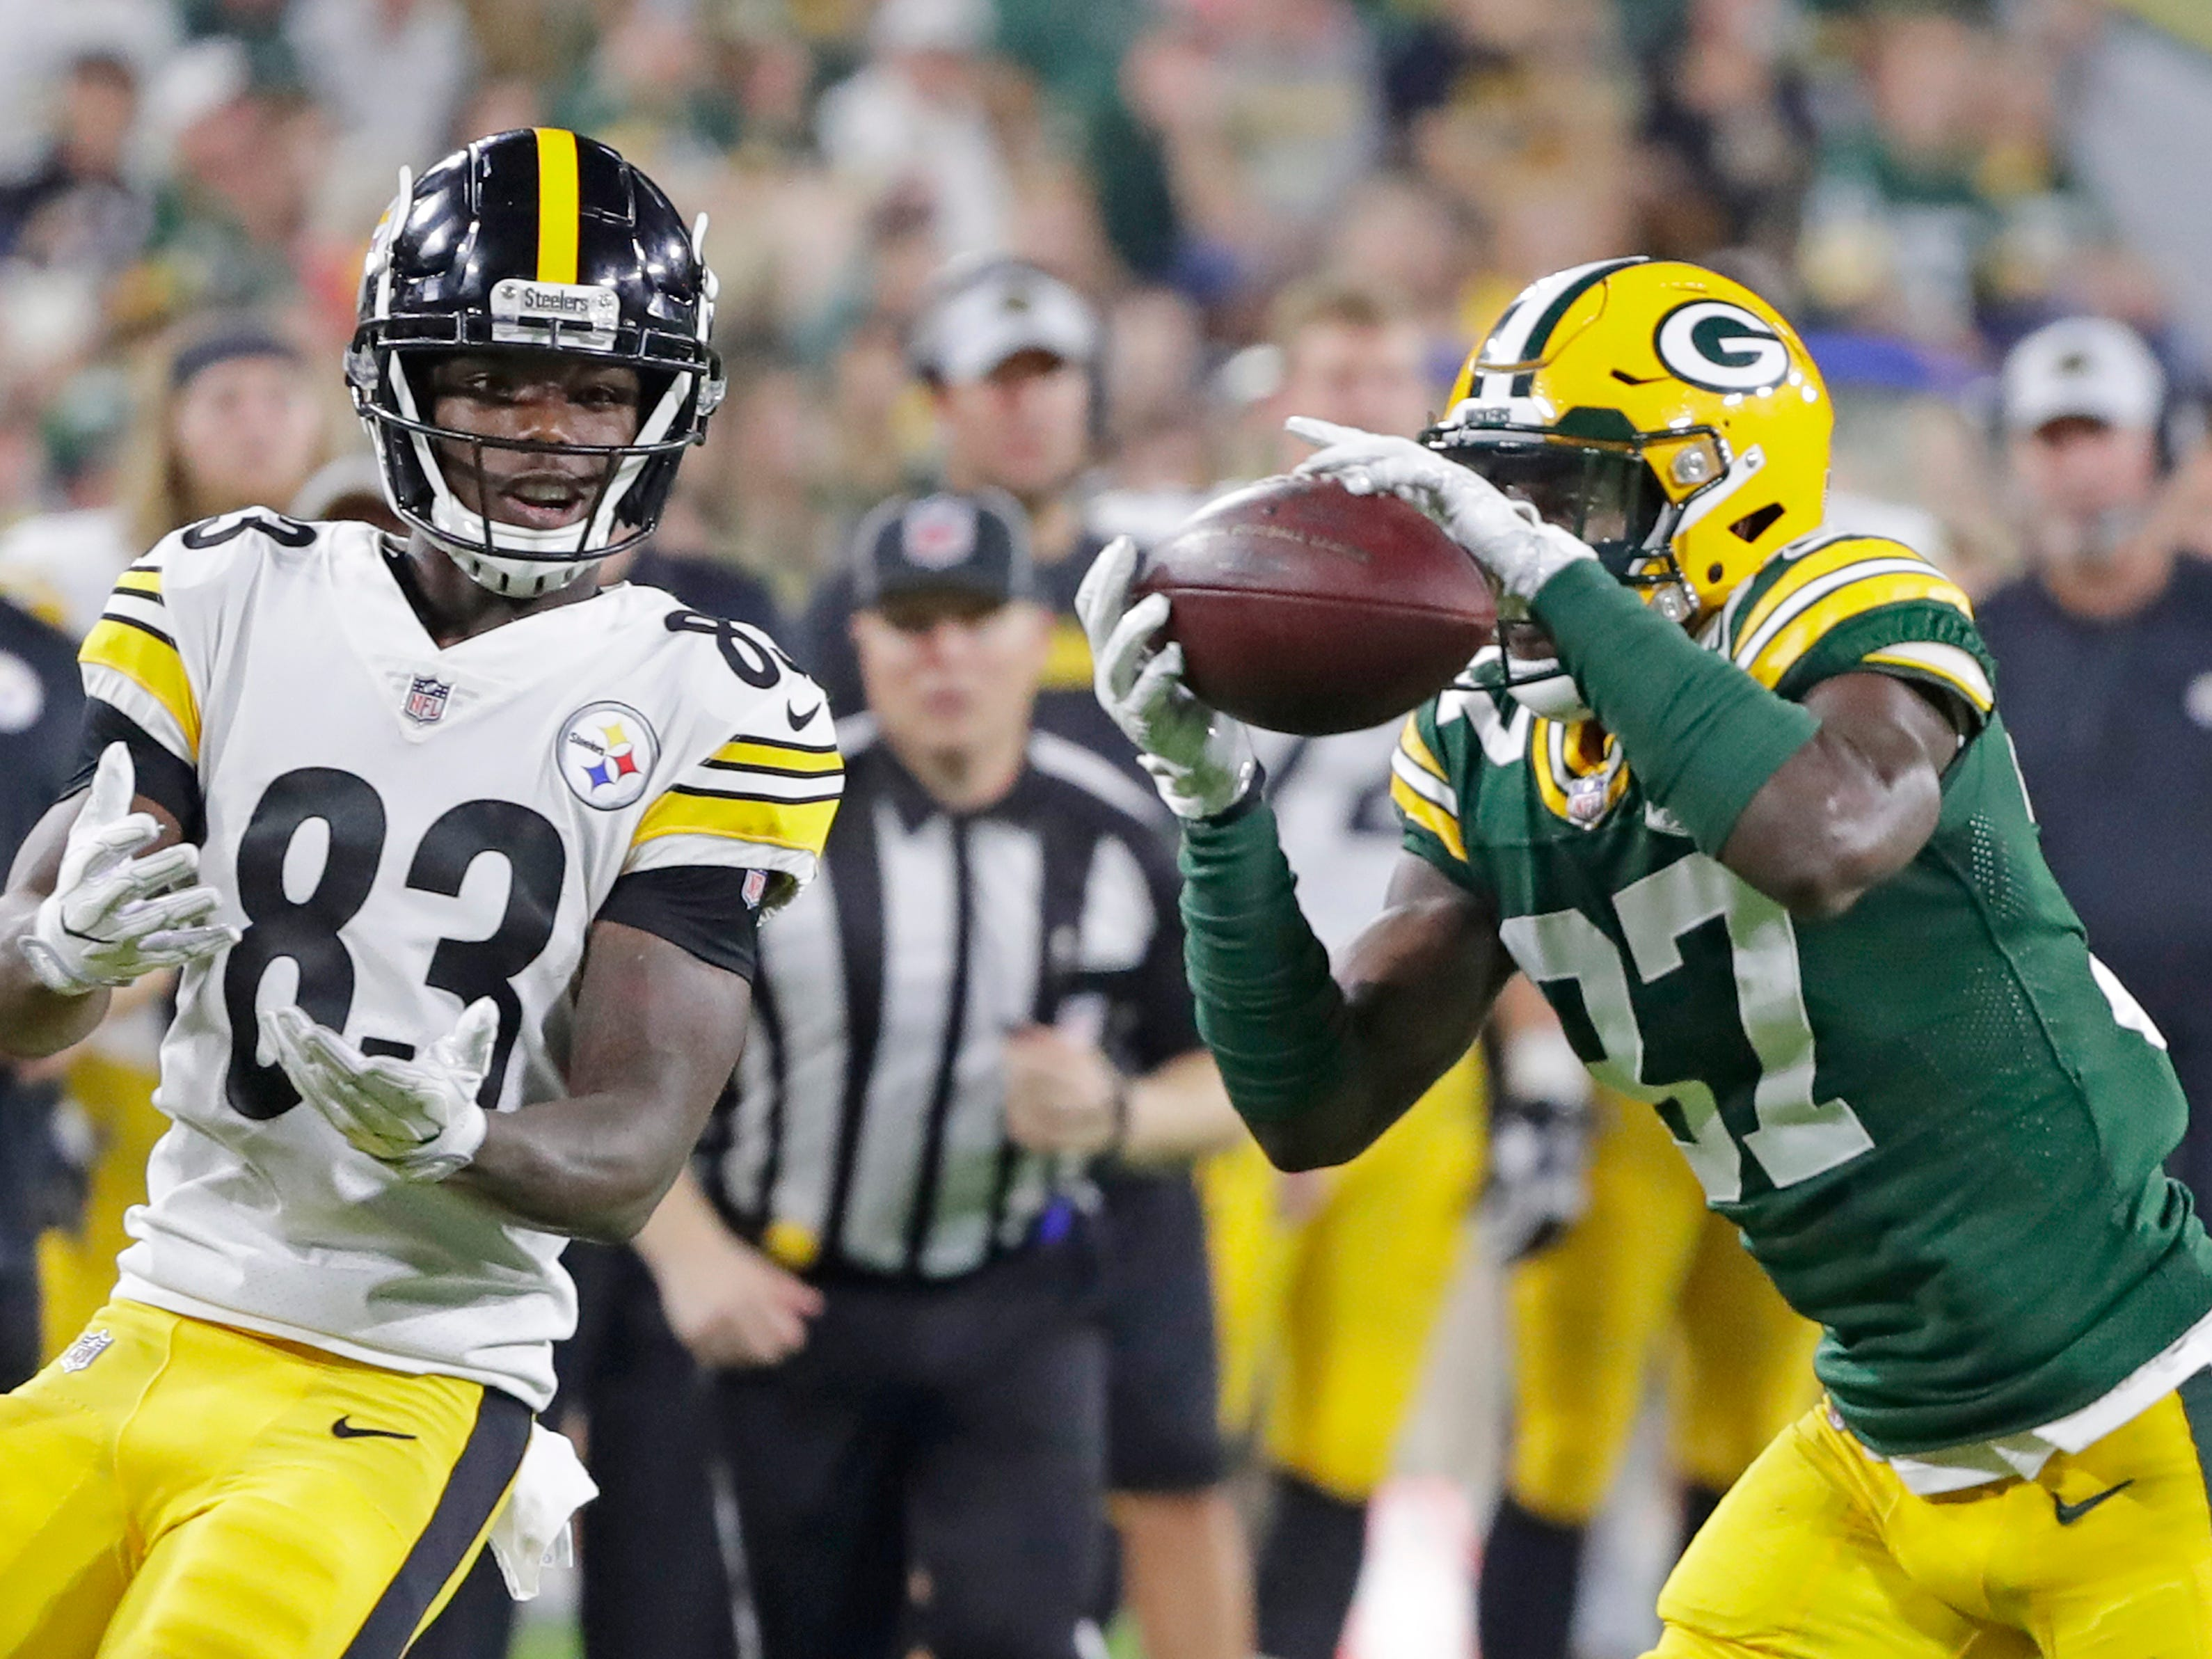 Green Bay Packers cornerback Josh Jackson (37) intercepts a pass intended for Pittsburgh Steelers wide receiver Damoun Patterson (83) in the third quarter of an NFL preseason game at Lambeau Field on Thursday, August 16, 2018 in Green Bay, Wis.